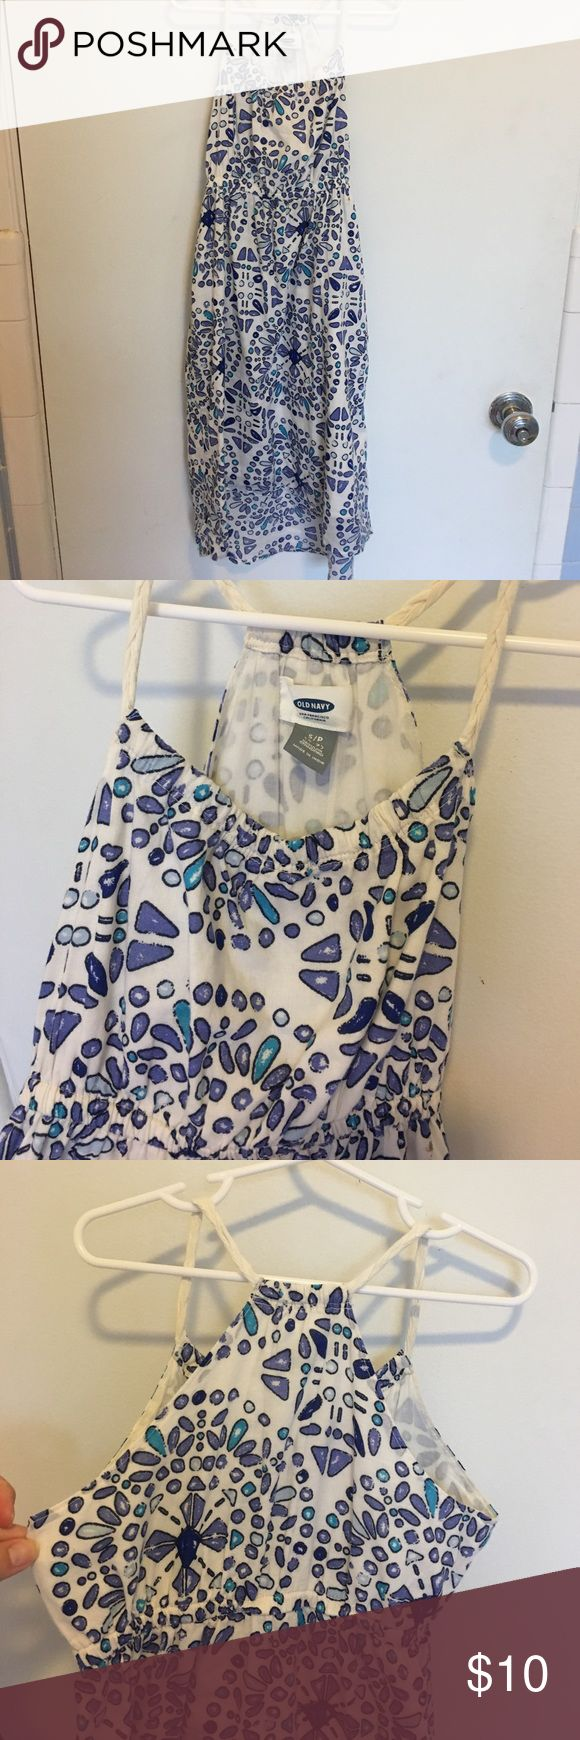 Old Navy girls high-low midi dress 💎 Super cute ....Old Navy high low midi dress with racer back, empire waist and braided strap detail dress is lined so it is not sheer!  🦋🐬🌊💎💙 Old Navy Dresses Casual